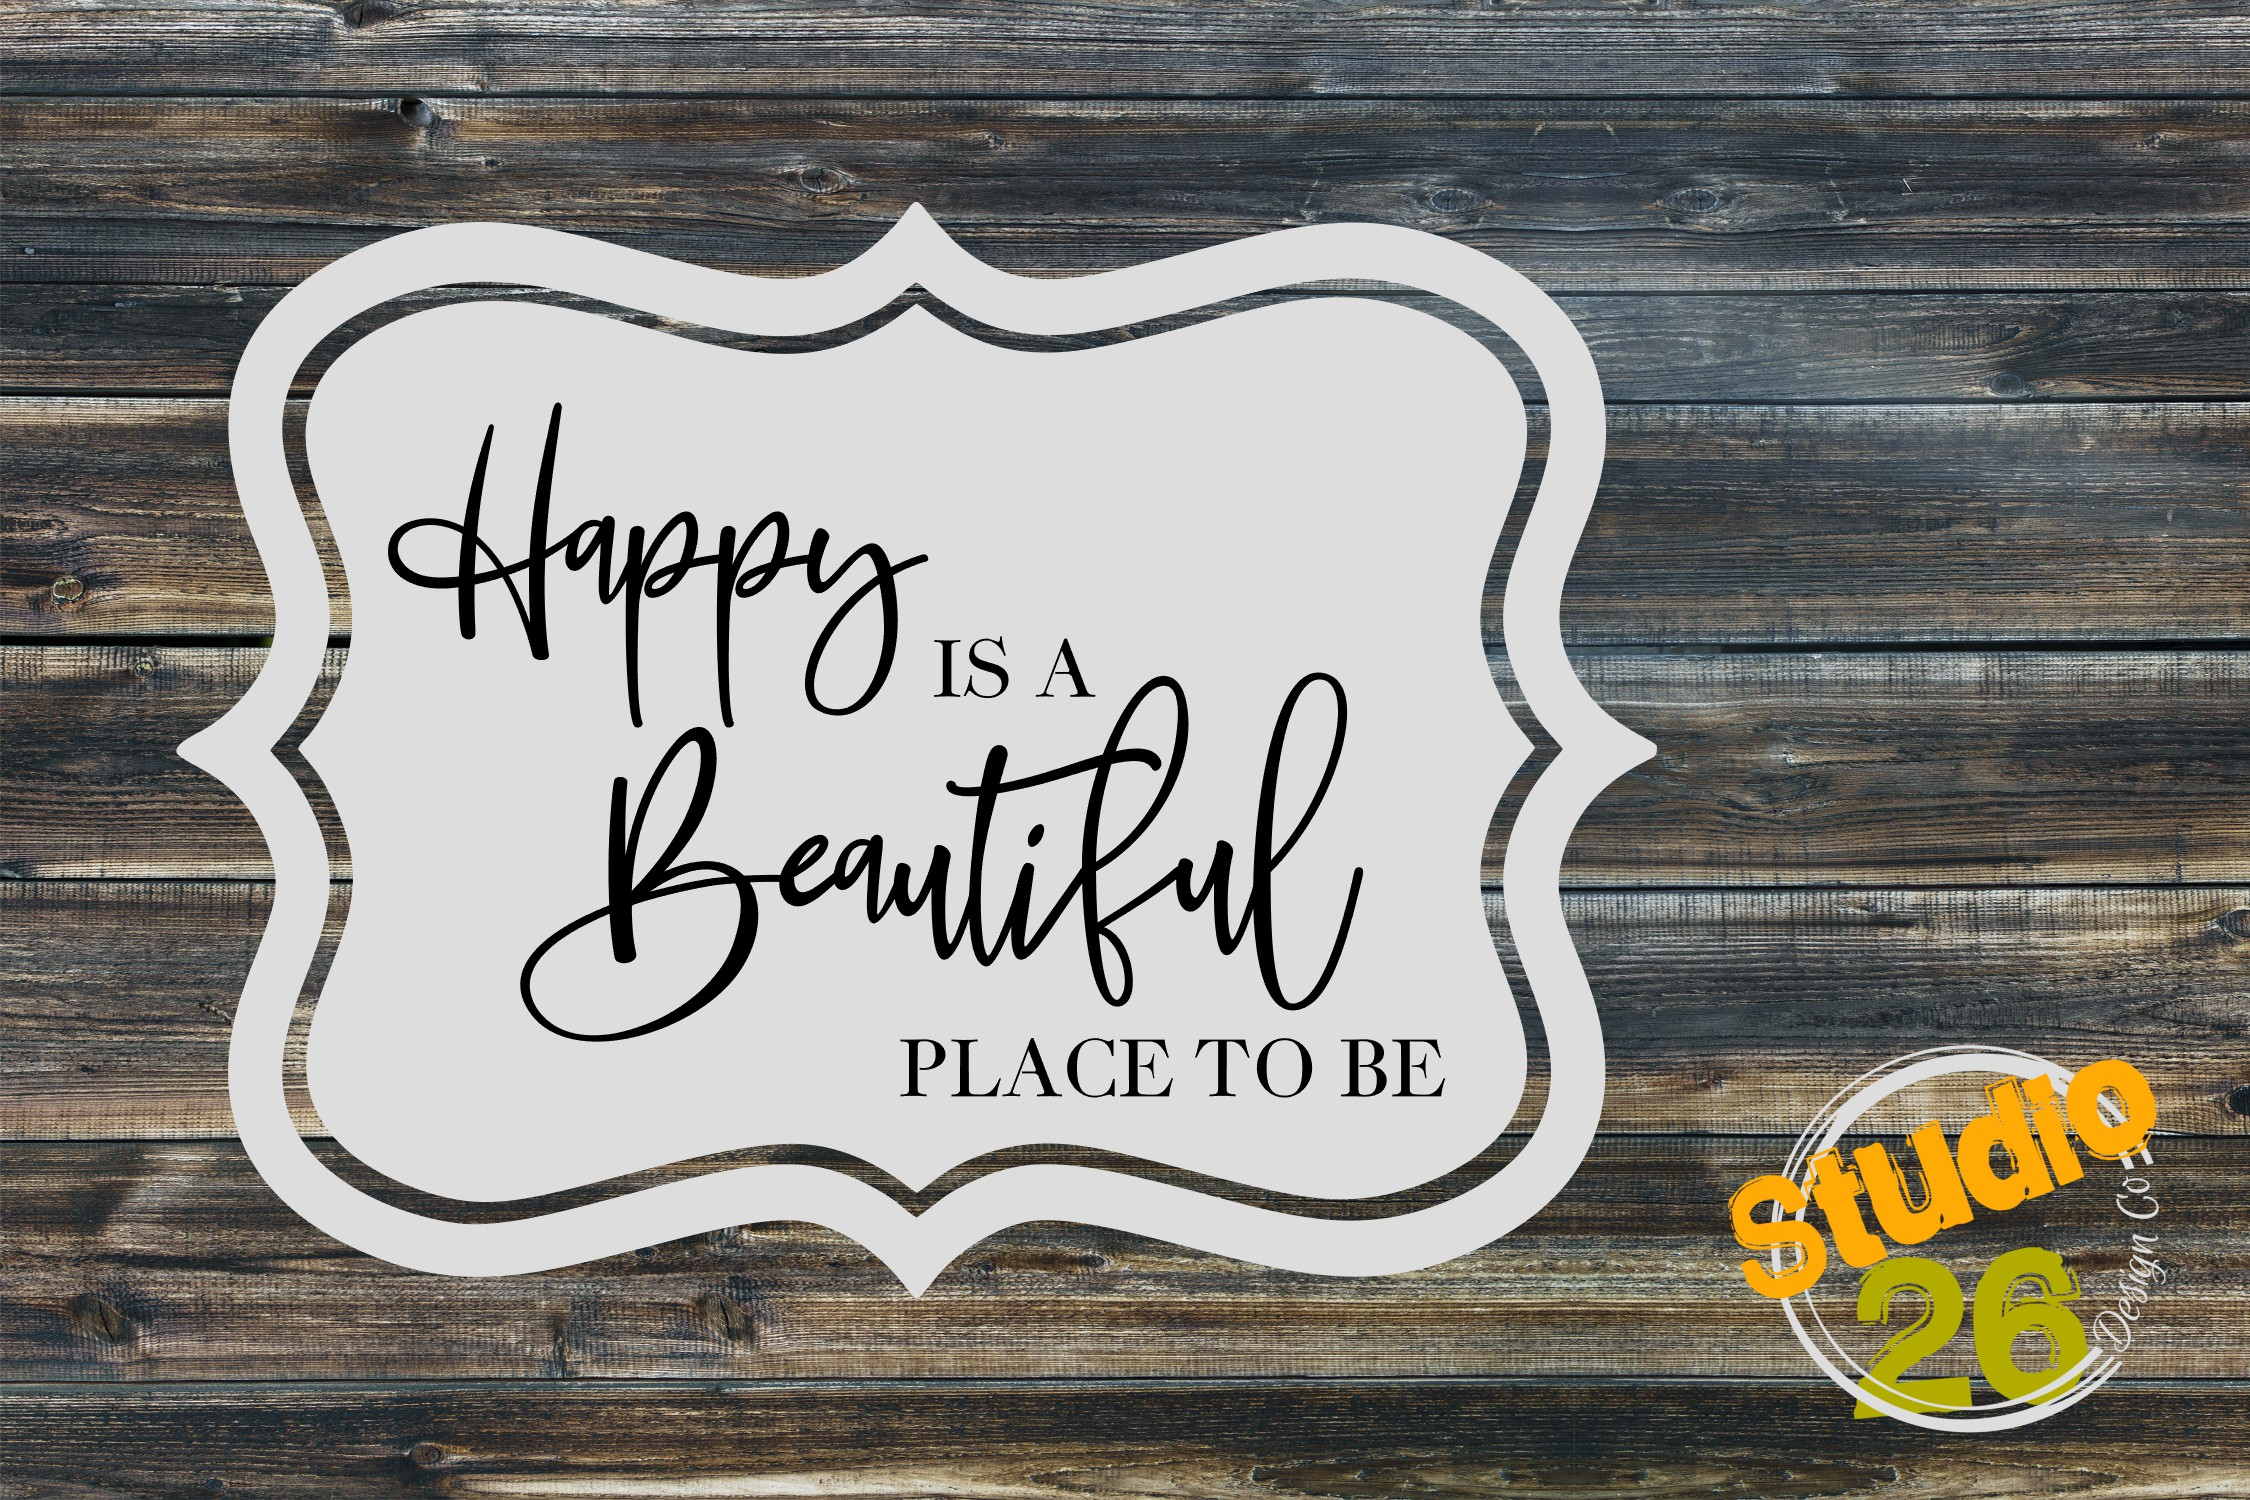 Download Free Happy Is A Beautiful Place To Be Svg Graphic By Studio 26 Design for Cricut Explore, Silhouette and other cutting machines.